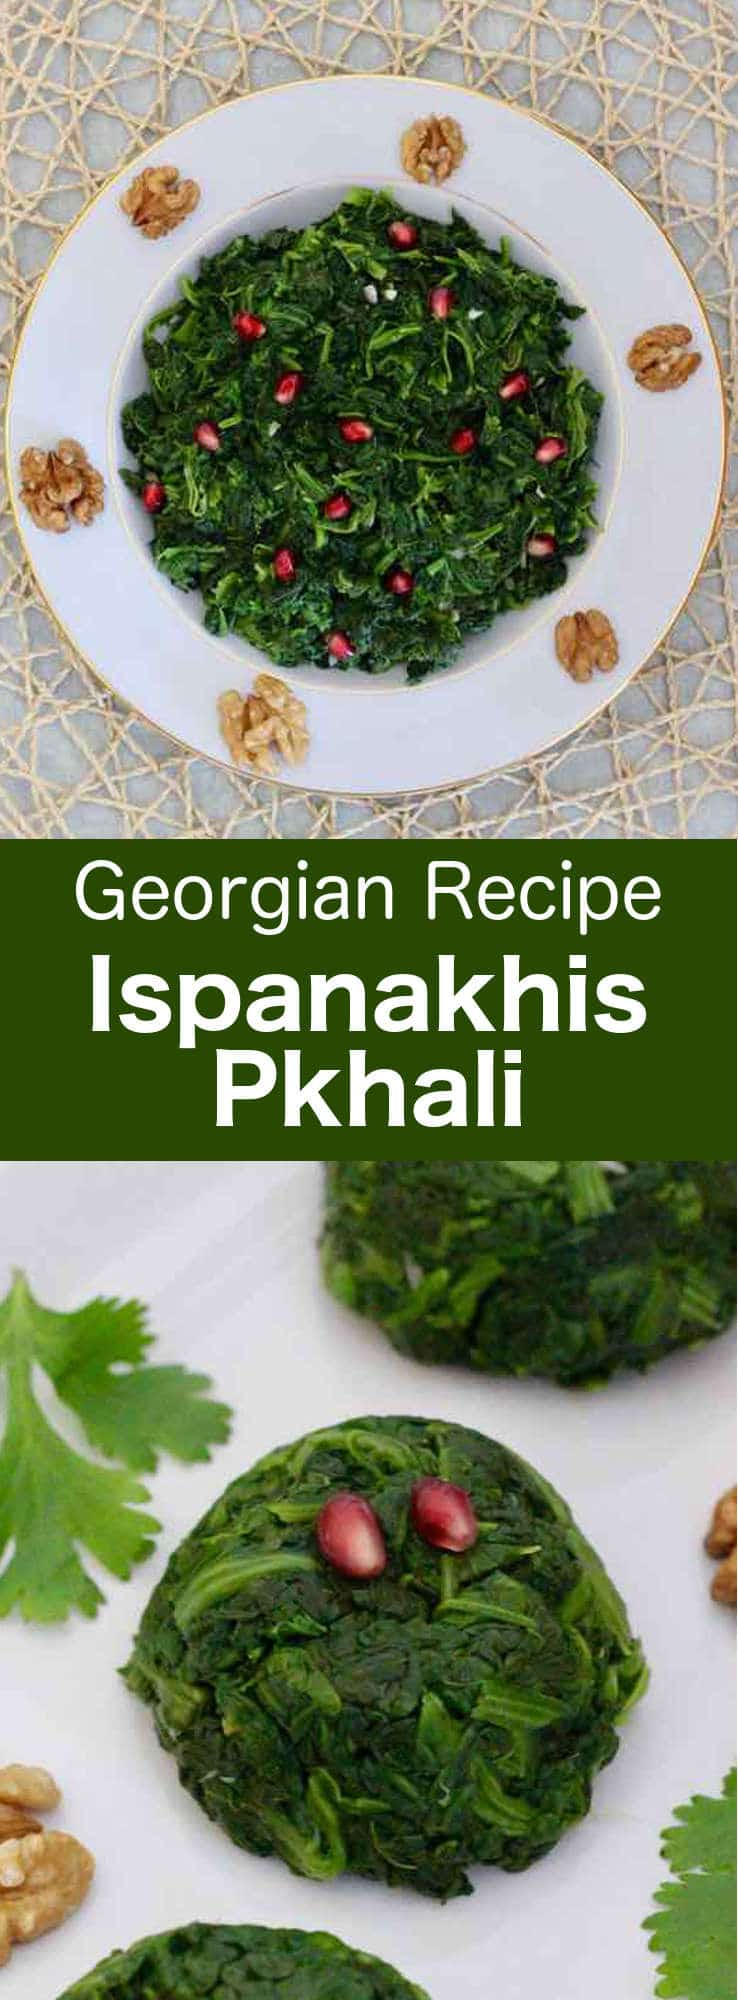 Ispanakhis Pkhali is a delicious traditional vegetarian Georgian specialty prepared with spinach and ground walnuts. #glutenfree #vegan #vegetarian #georgia #196flavors